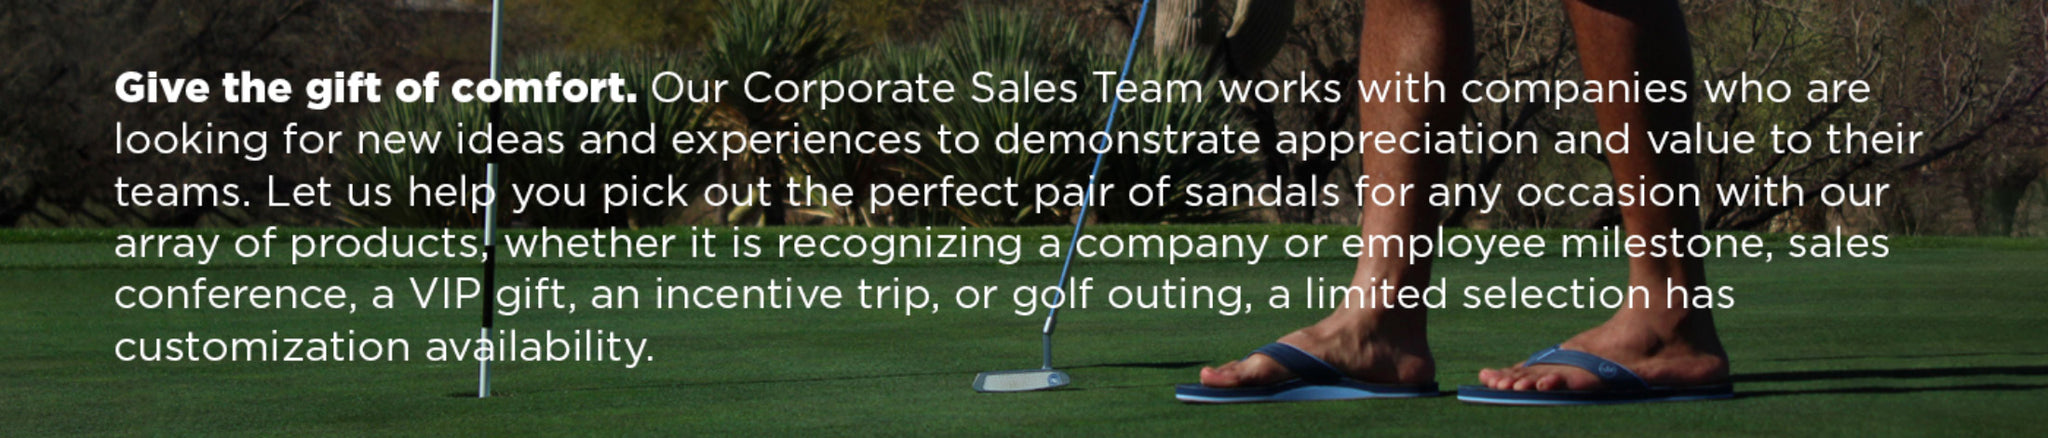 Give the gift of comfort. Our Corporate Sales Team works with companies who are looking for new ideas and experiences to demonstrate appreciation and value to their teams. Let us help you pick out the perfect pair of sandals for any occasion with our array of products, whether it is recognizing a company or employee milestone, sales conference, a VIP gift, an incentive trip, or golf outing, a limited selection has customization availability.